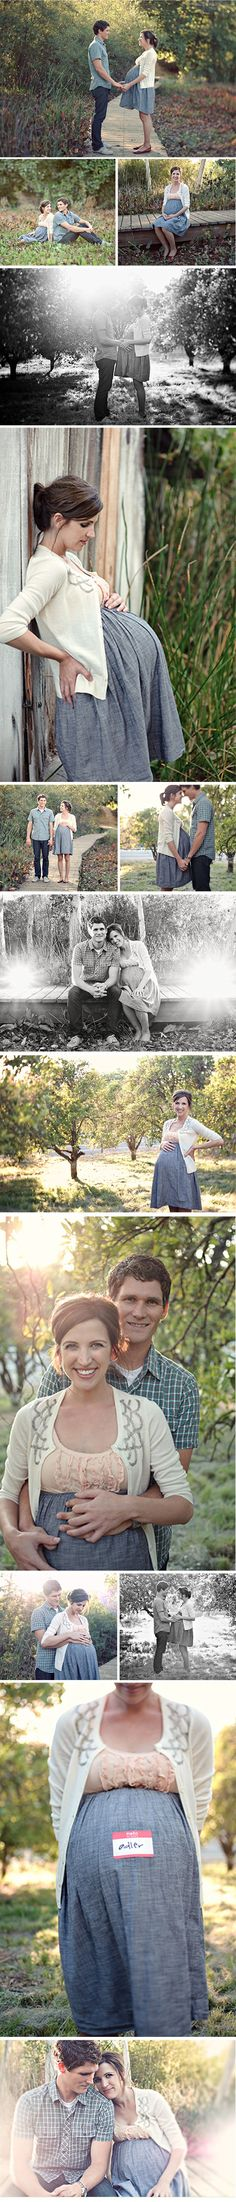 love this maternity shoot!